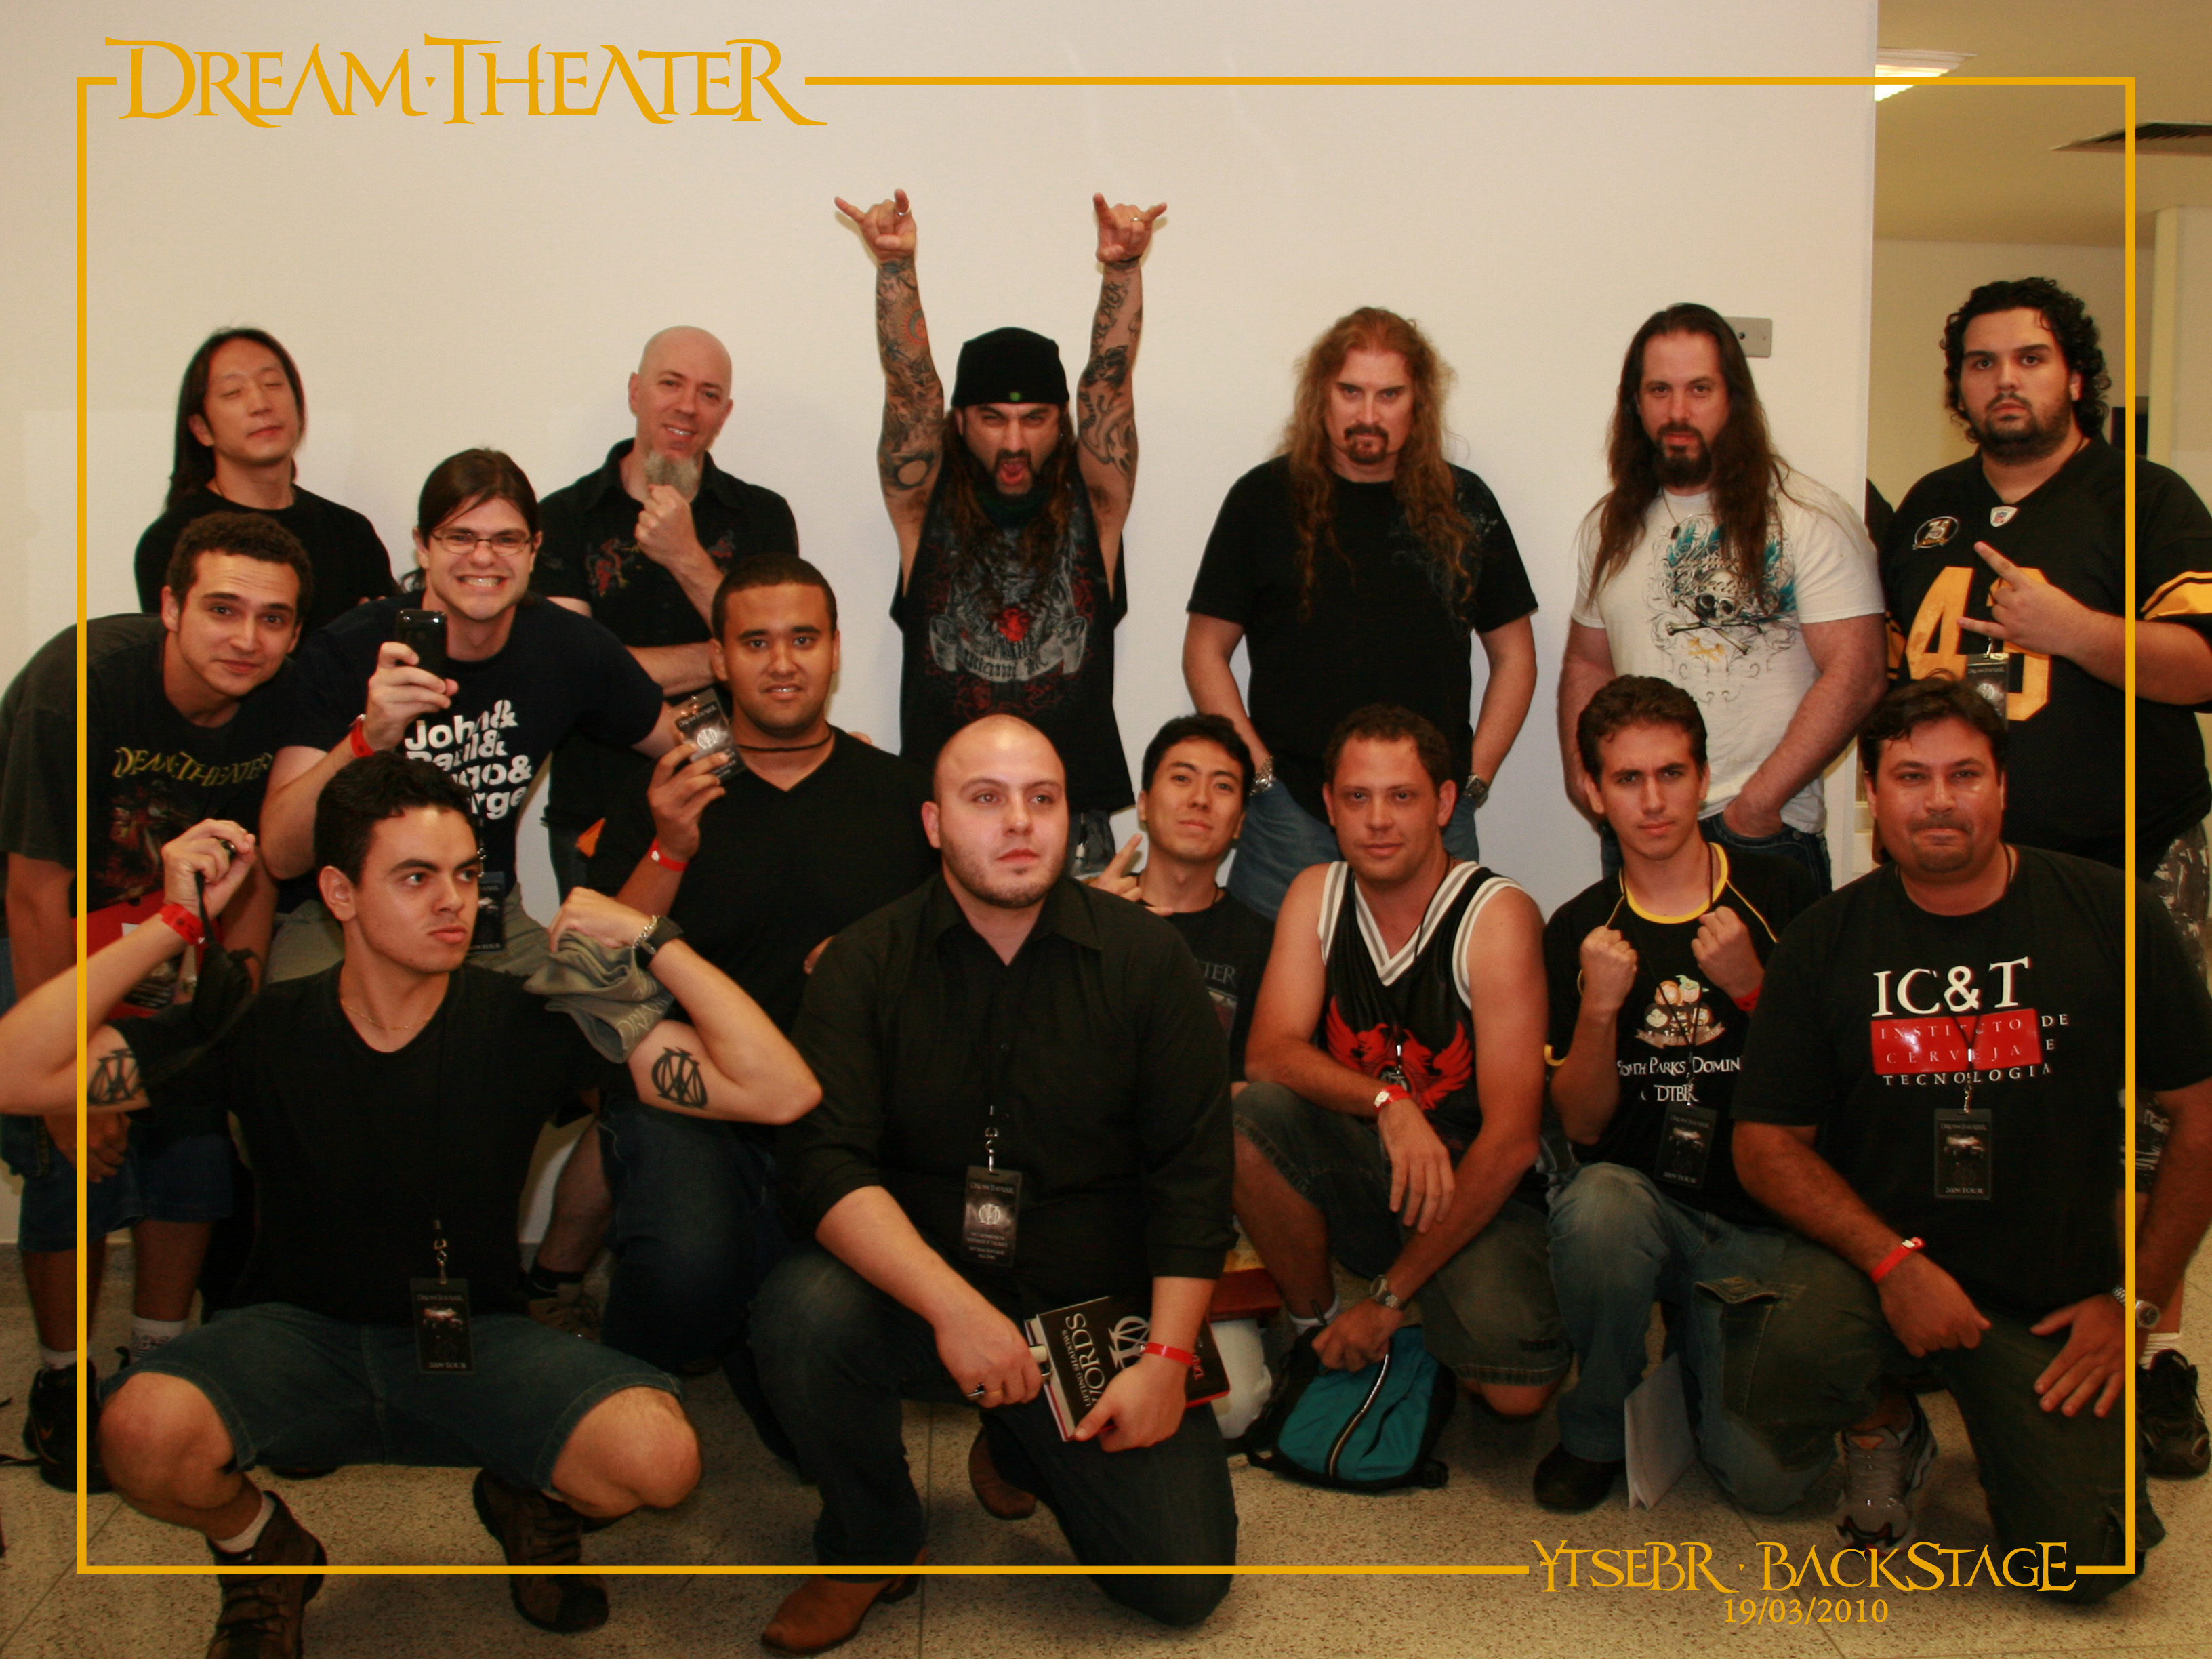 YtseBR-Backstage-SaoPaulo-Brazil-19March2010-TeamFotoOficial (5)